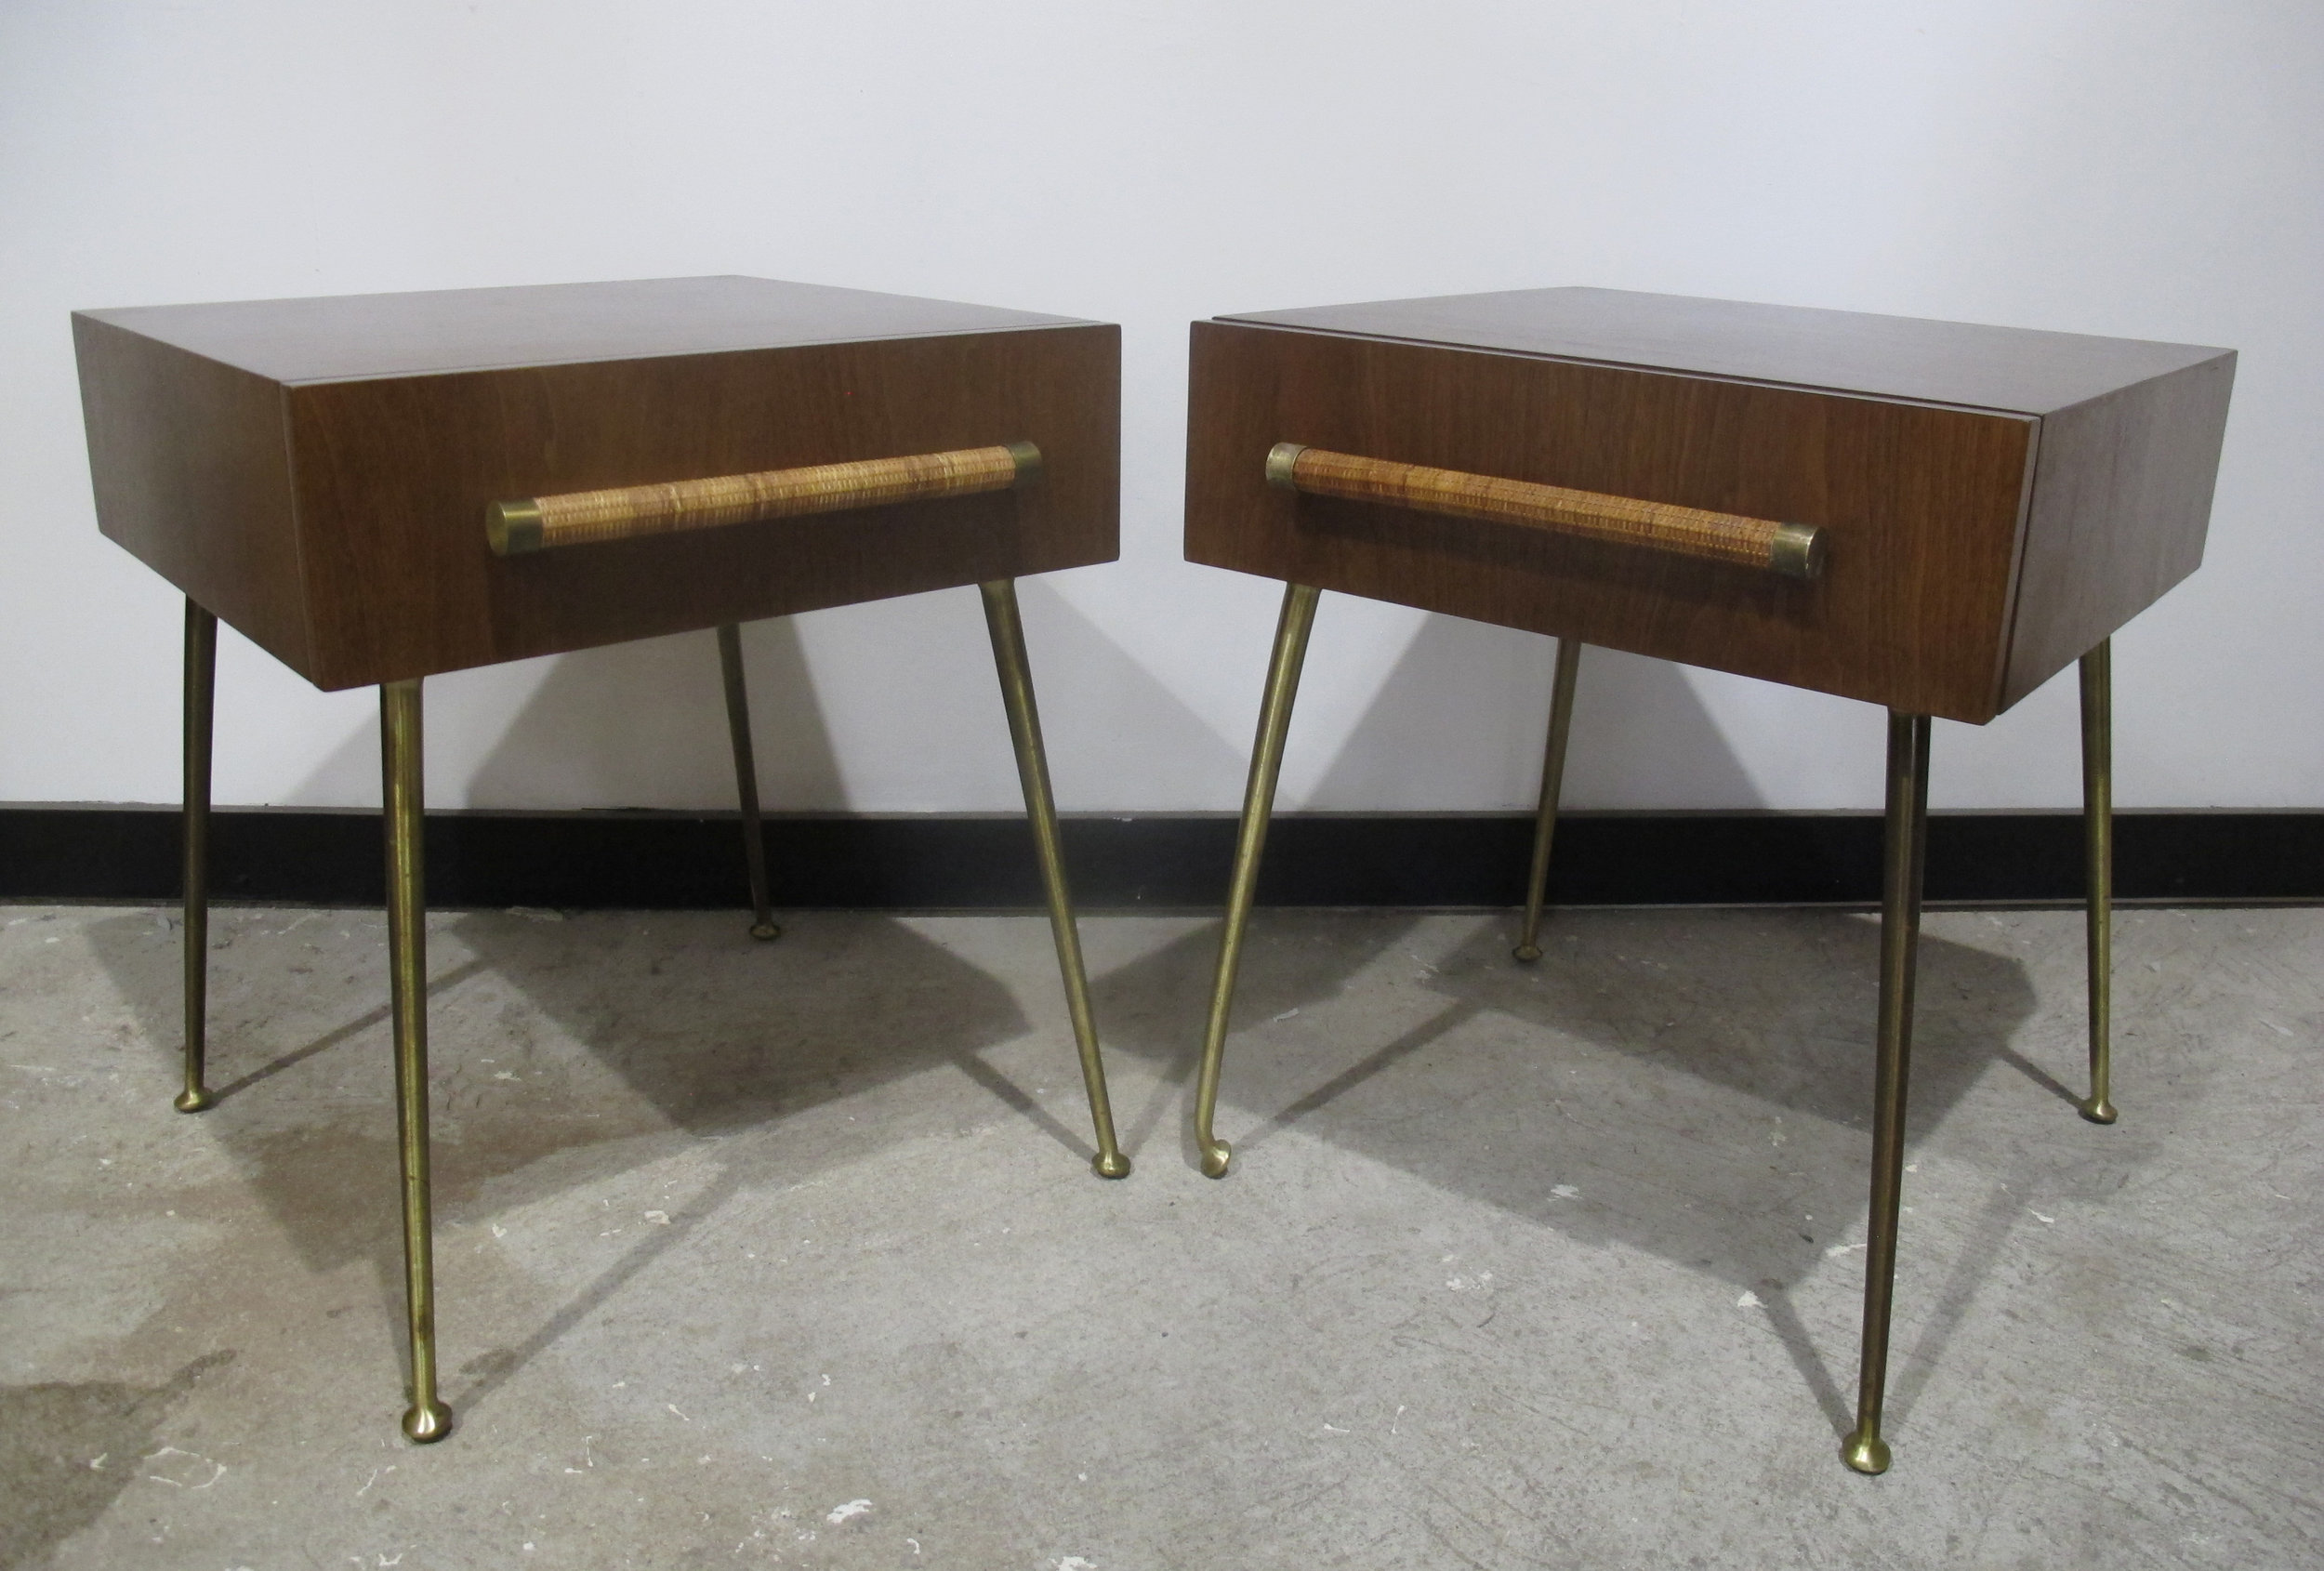 PAIR OF ROBSJOHN GIBBINGS NIGHTSTANDS FOR WIDDICOMB